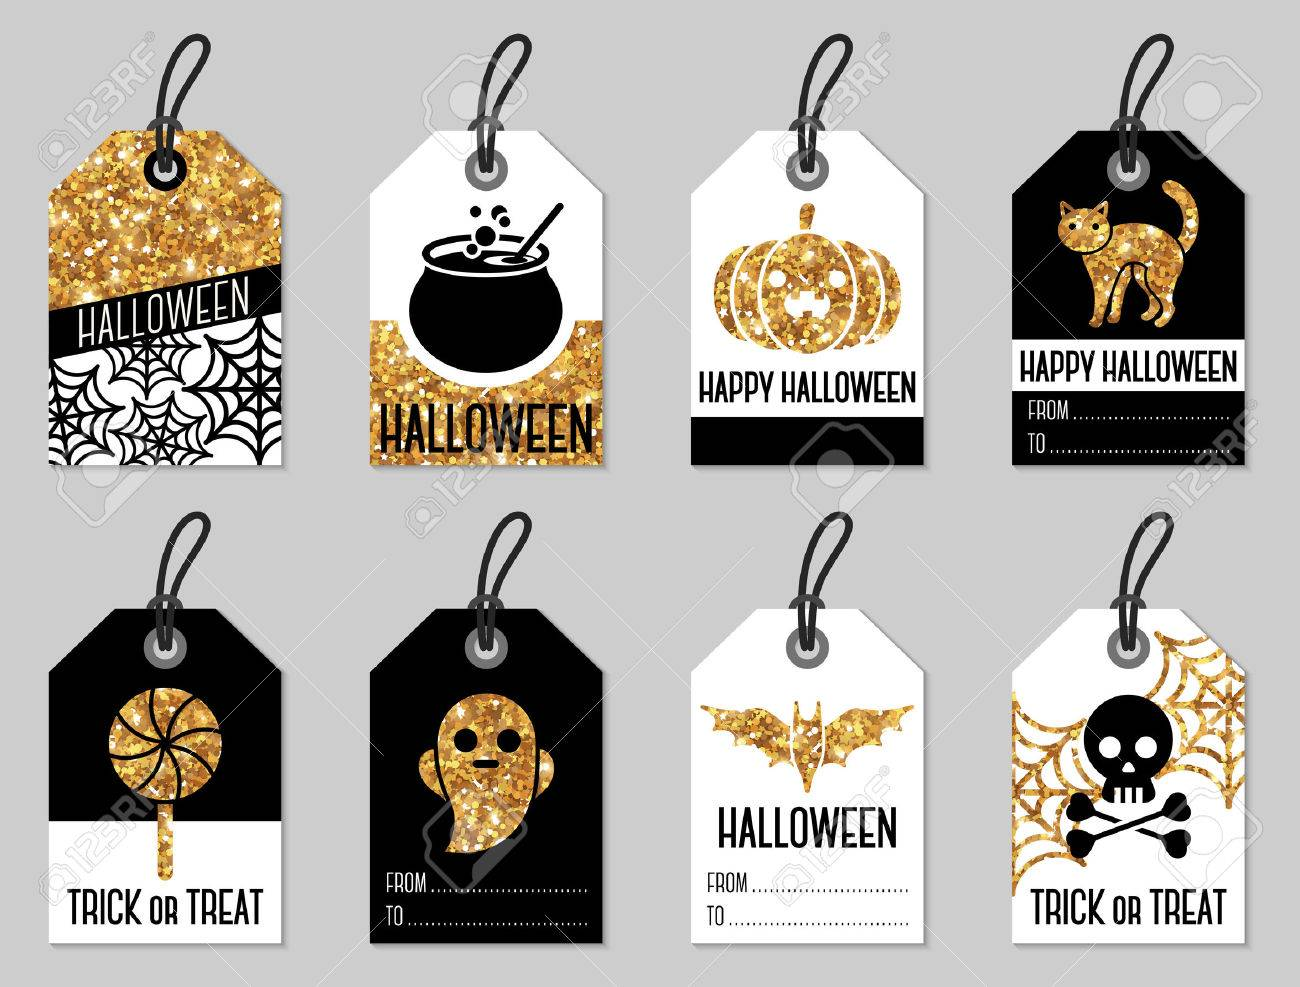 Set Of Halloween Gift Tags Illustration Shining Gold Texture Royalty Free Cliparts Vectors And Stock Illustration Image 63127015